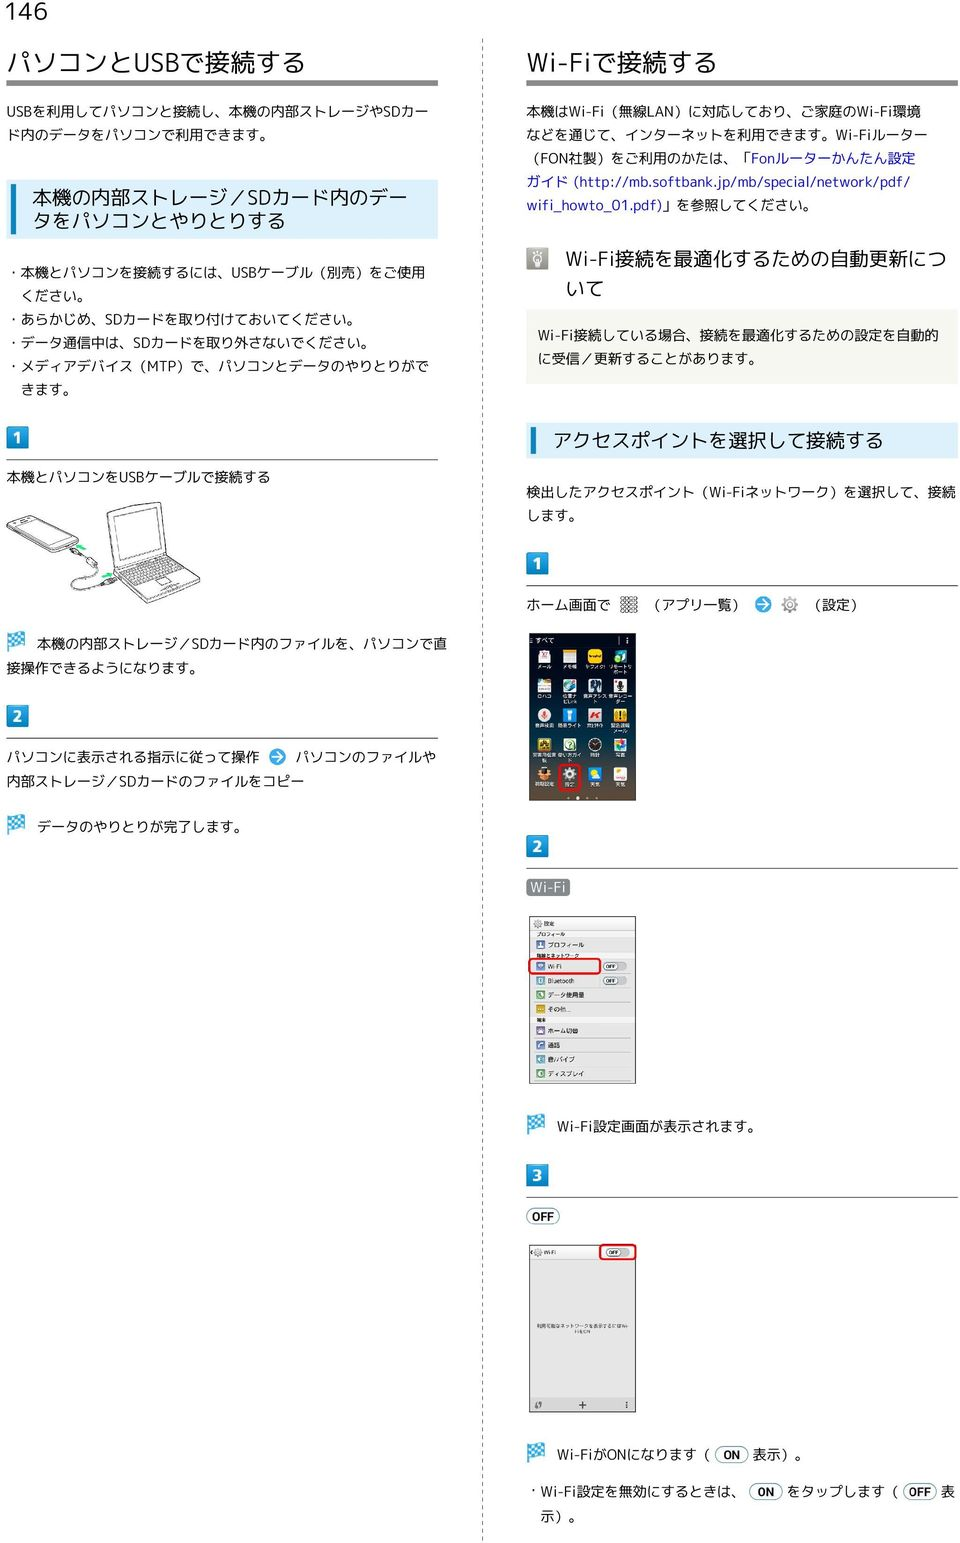 Fonルーターかんたん 設 定 ガイド (http://mb.softbank.jp/mb/special/network/pdf/ wifi_howto_01.